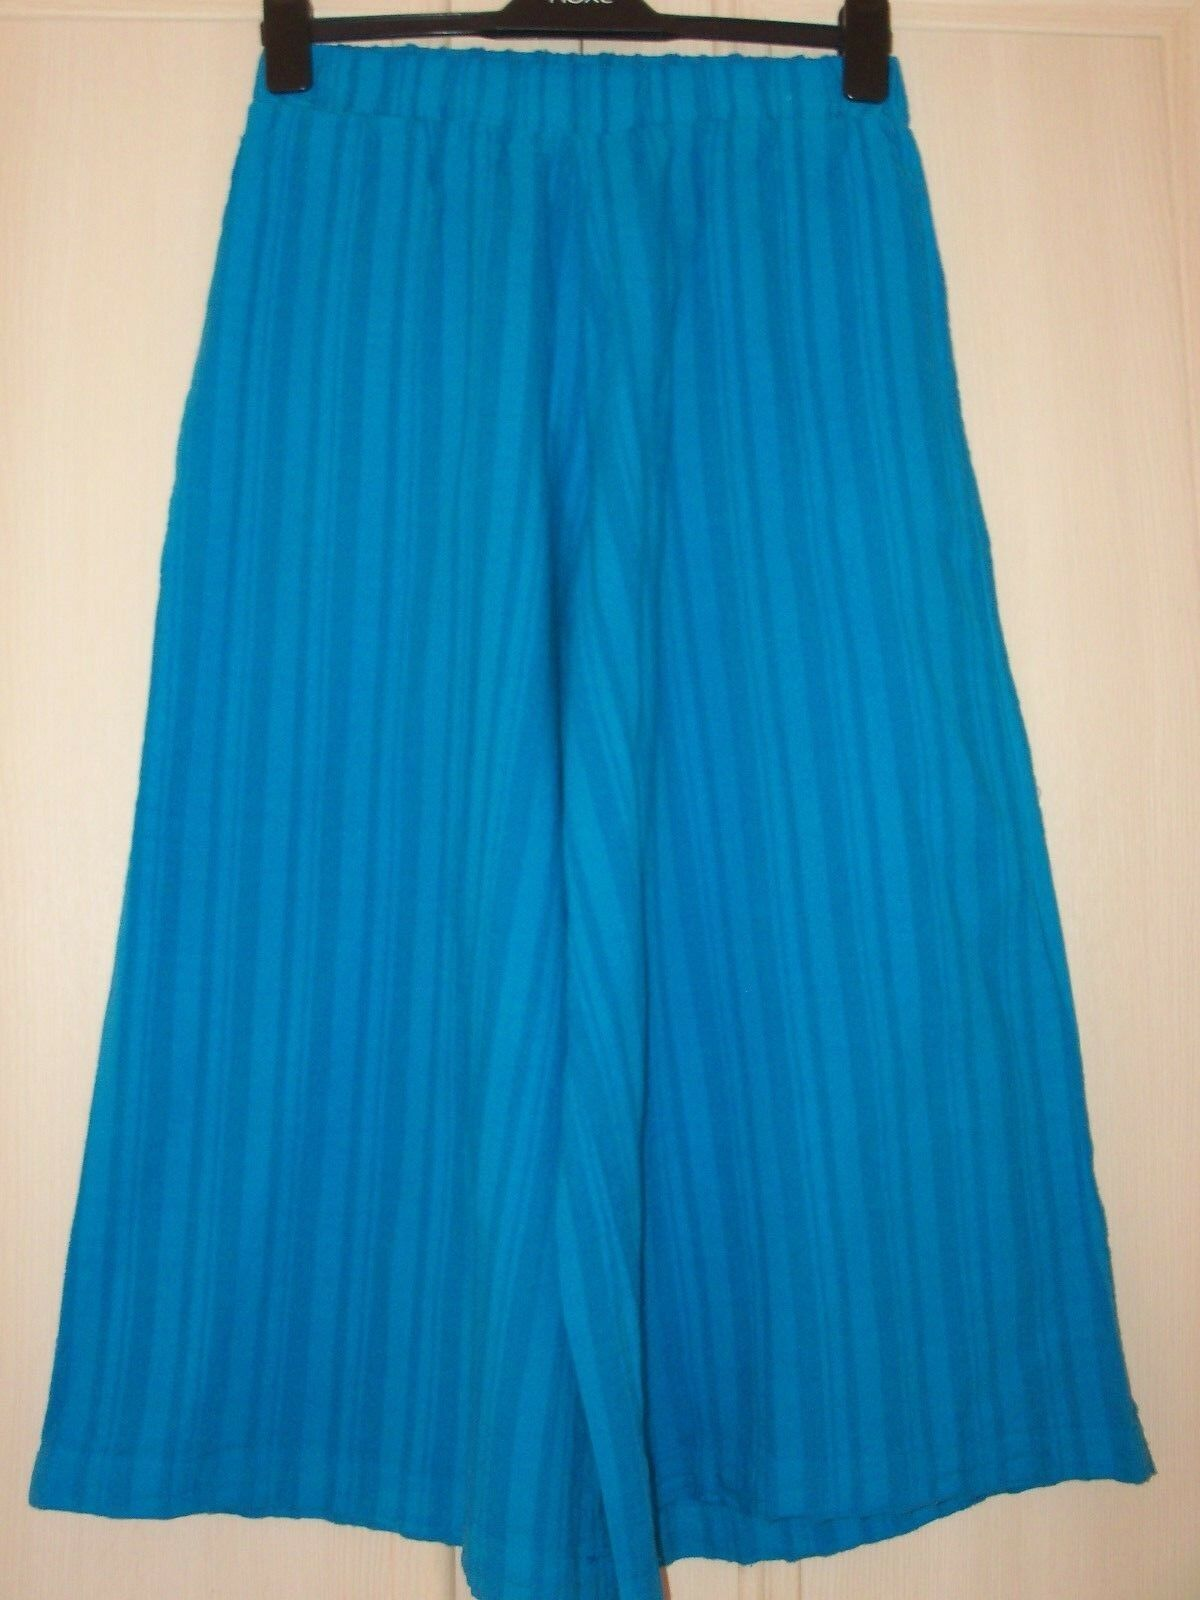 NEW JOIN Clothes Culottes   Pants Azure bluee Size UK Small or Medium